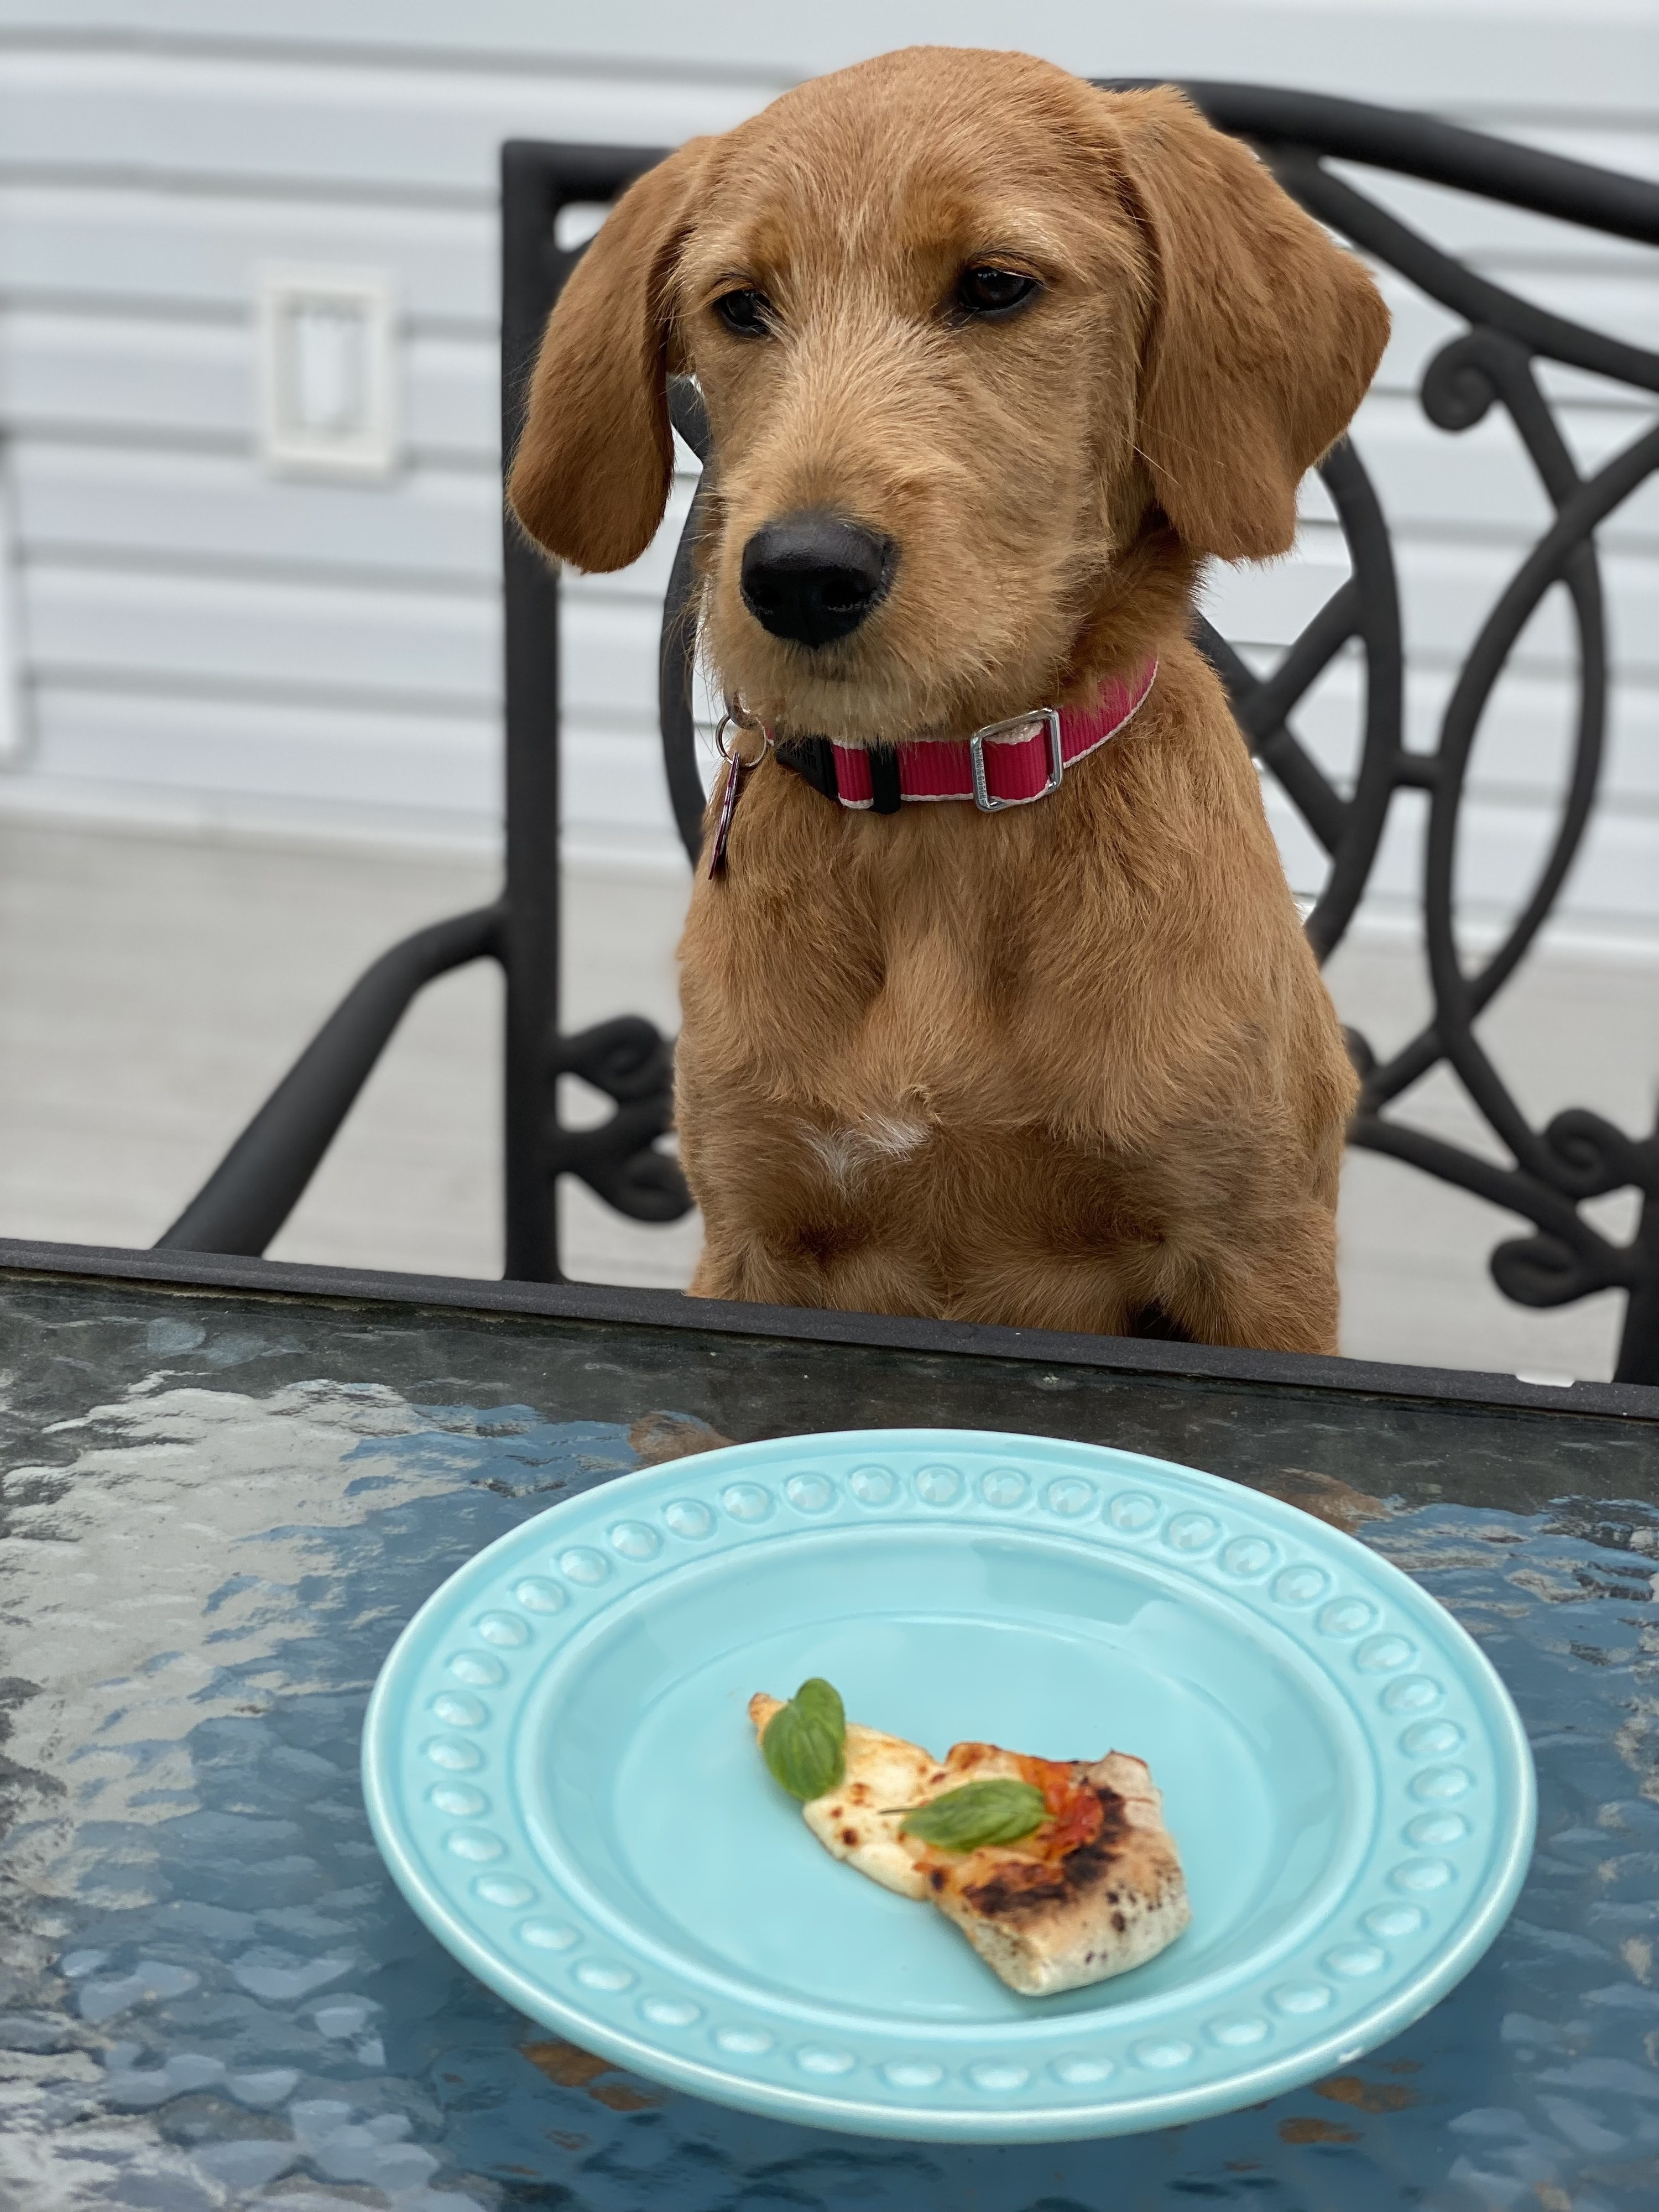 A puppy with a slice of pizza on a plate